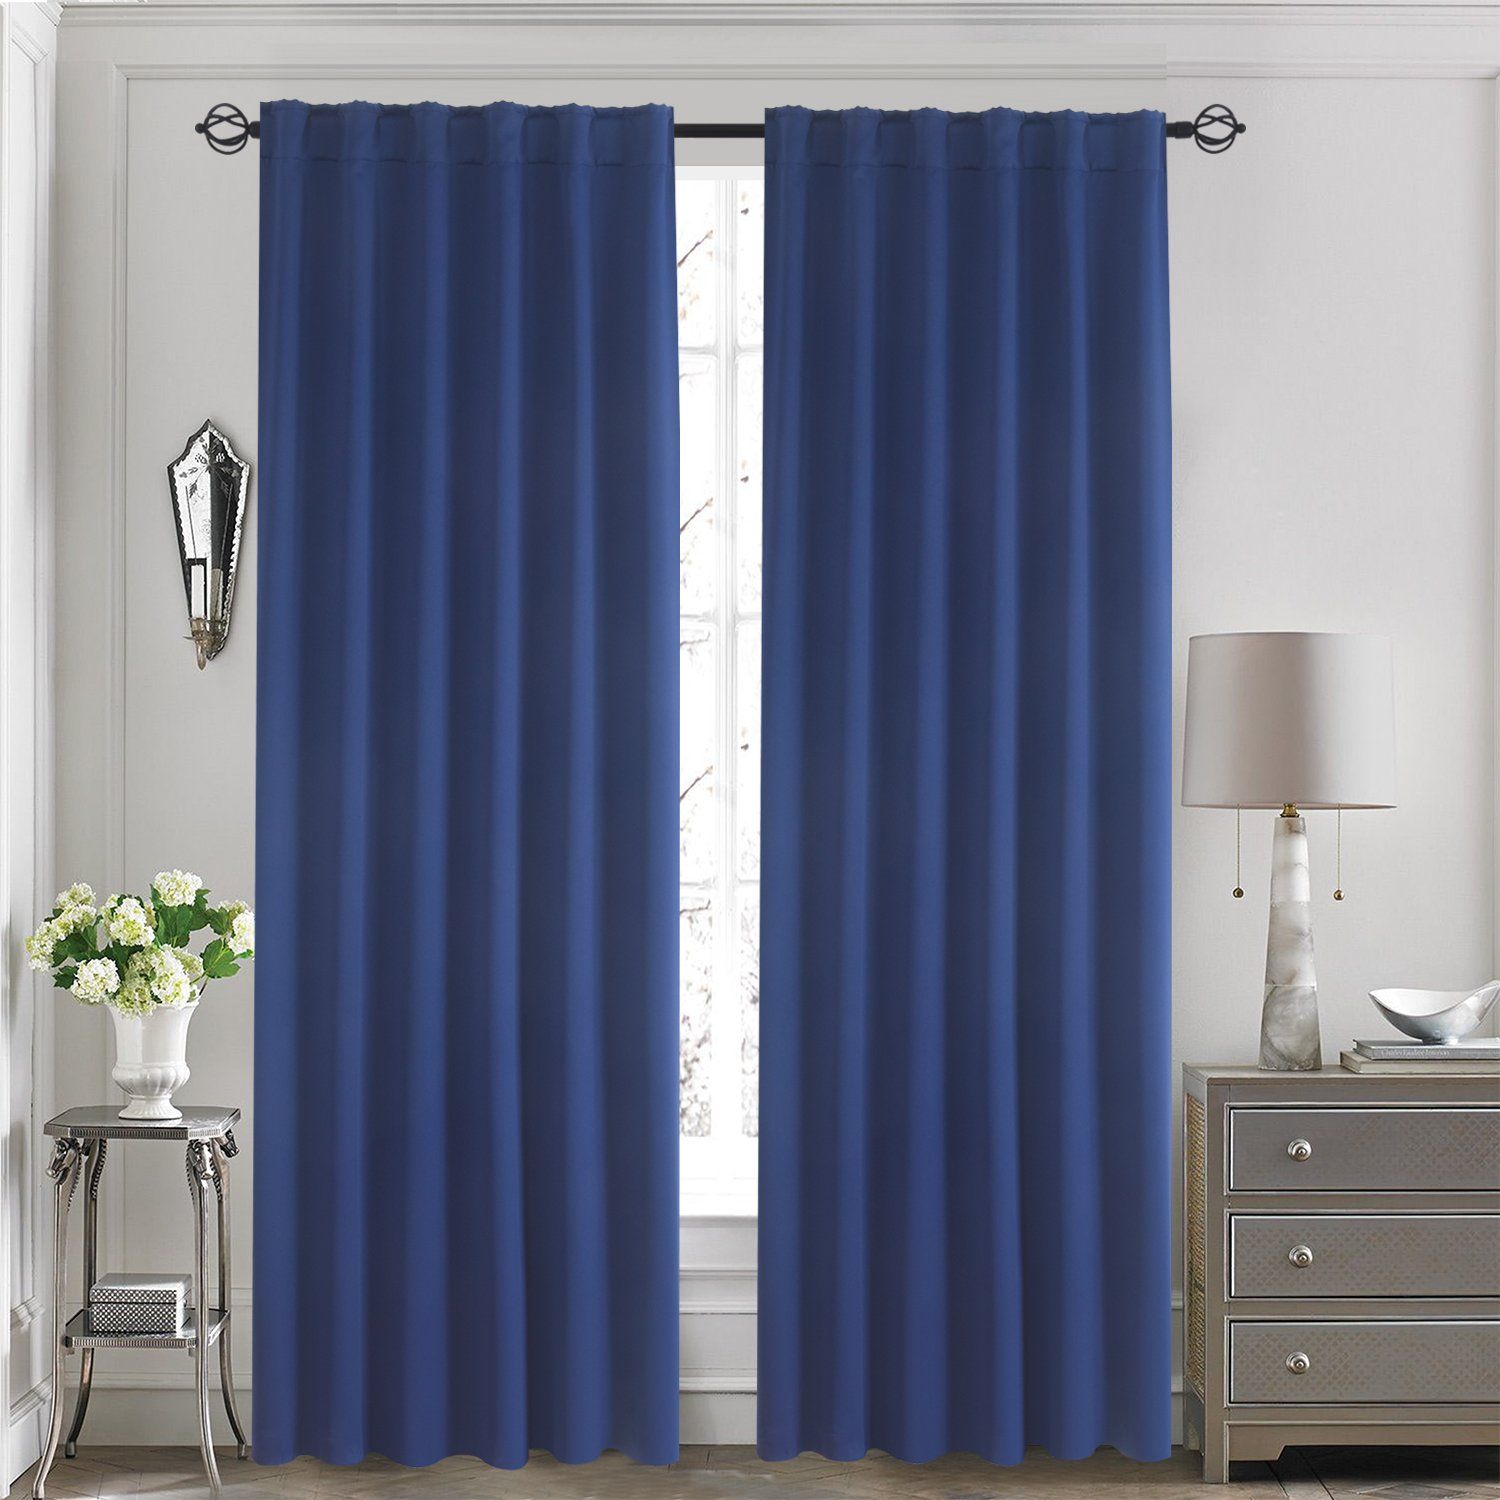 Aquazolax Thermal Insulated Solid Blackout Drape Curtains With Rod